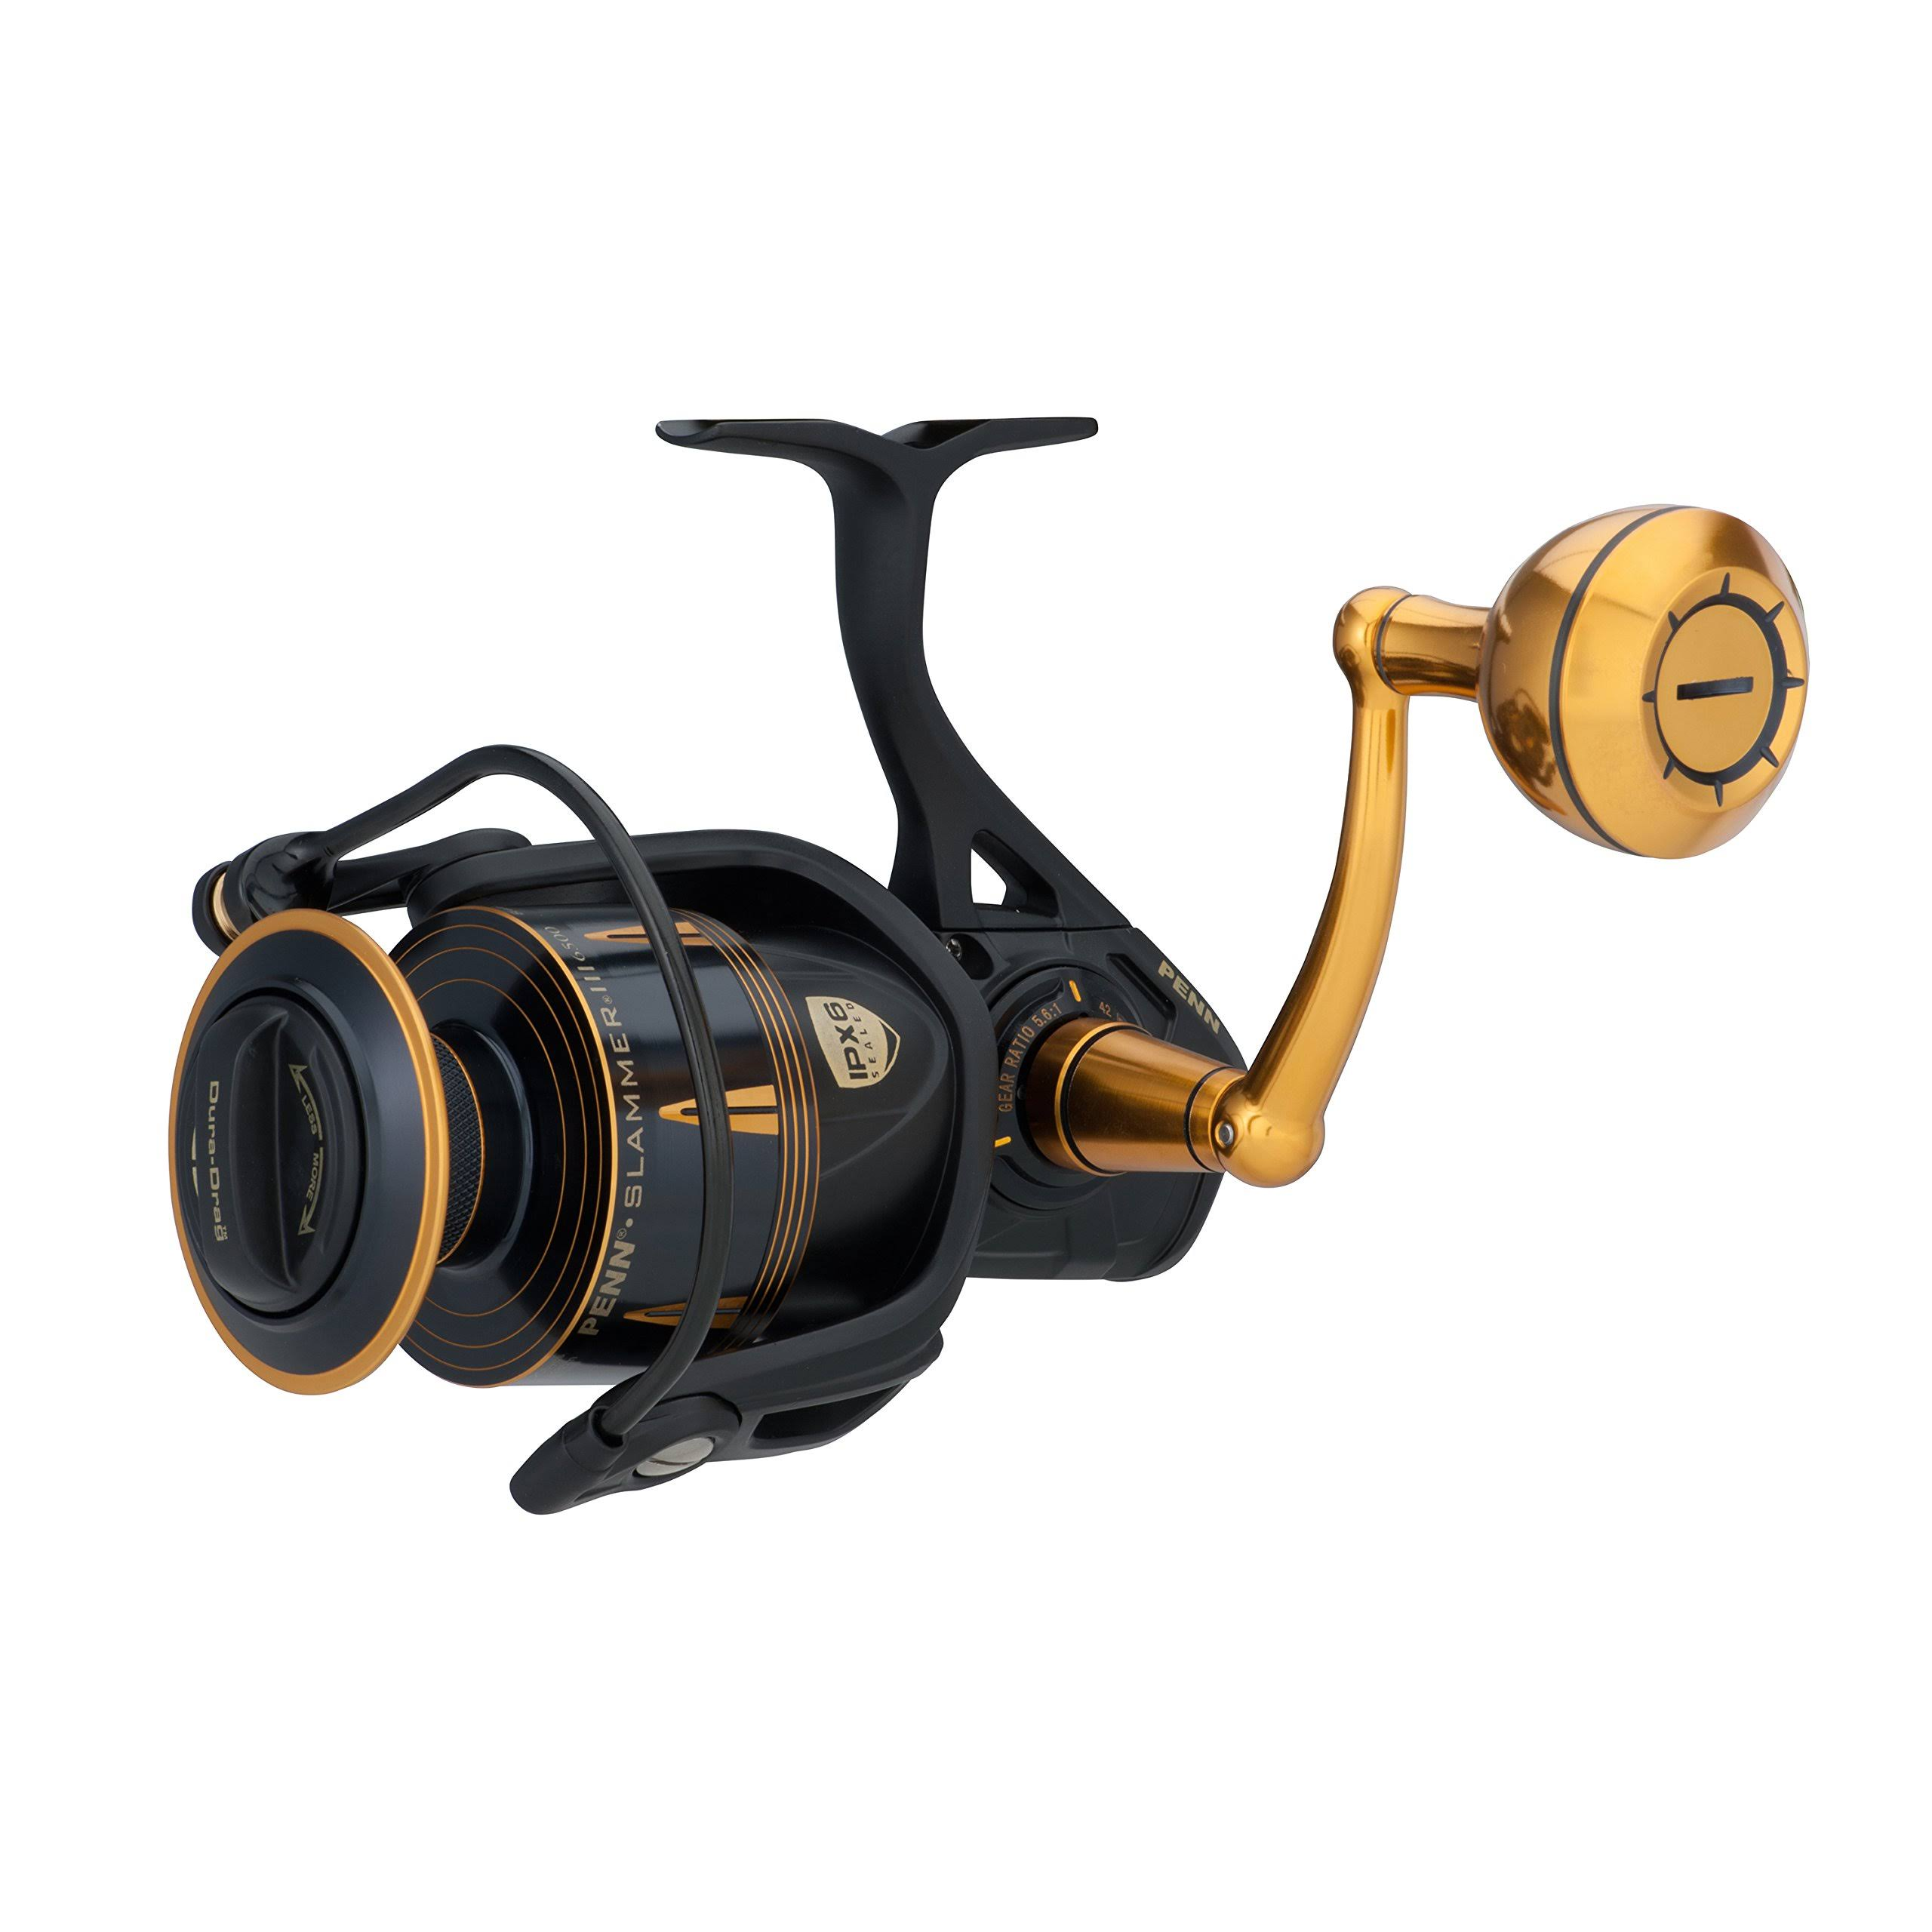 Penn Slammer III Spinning Reel - 5.6:1 Gear Ratio